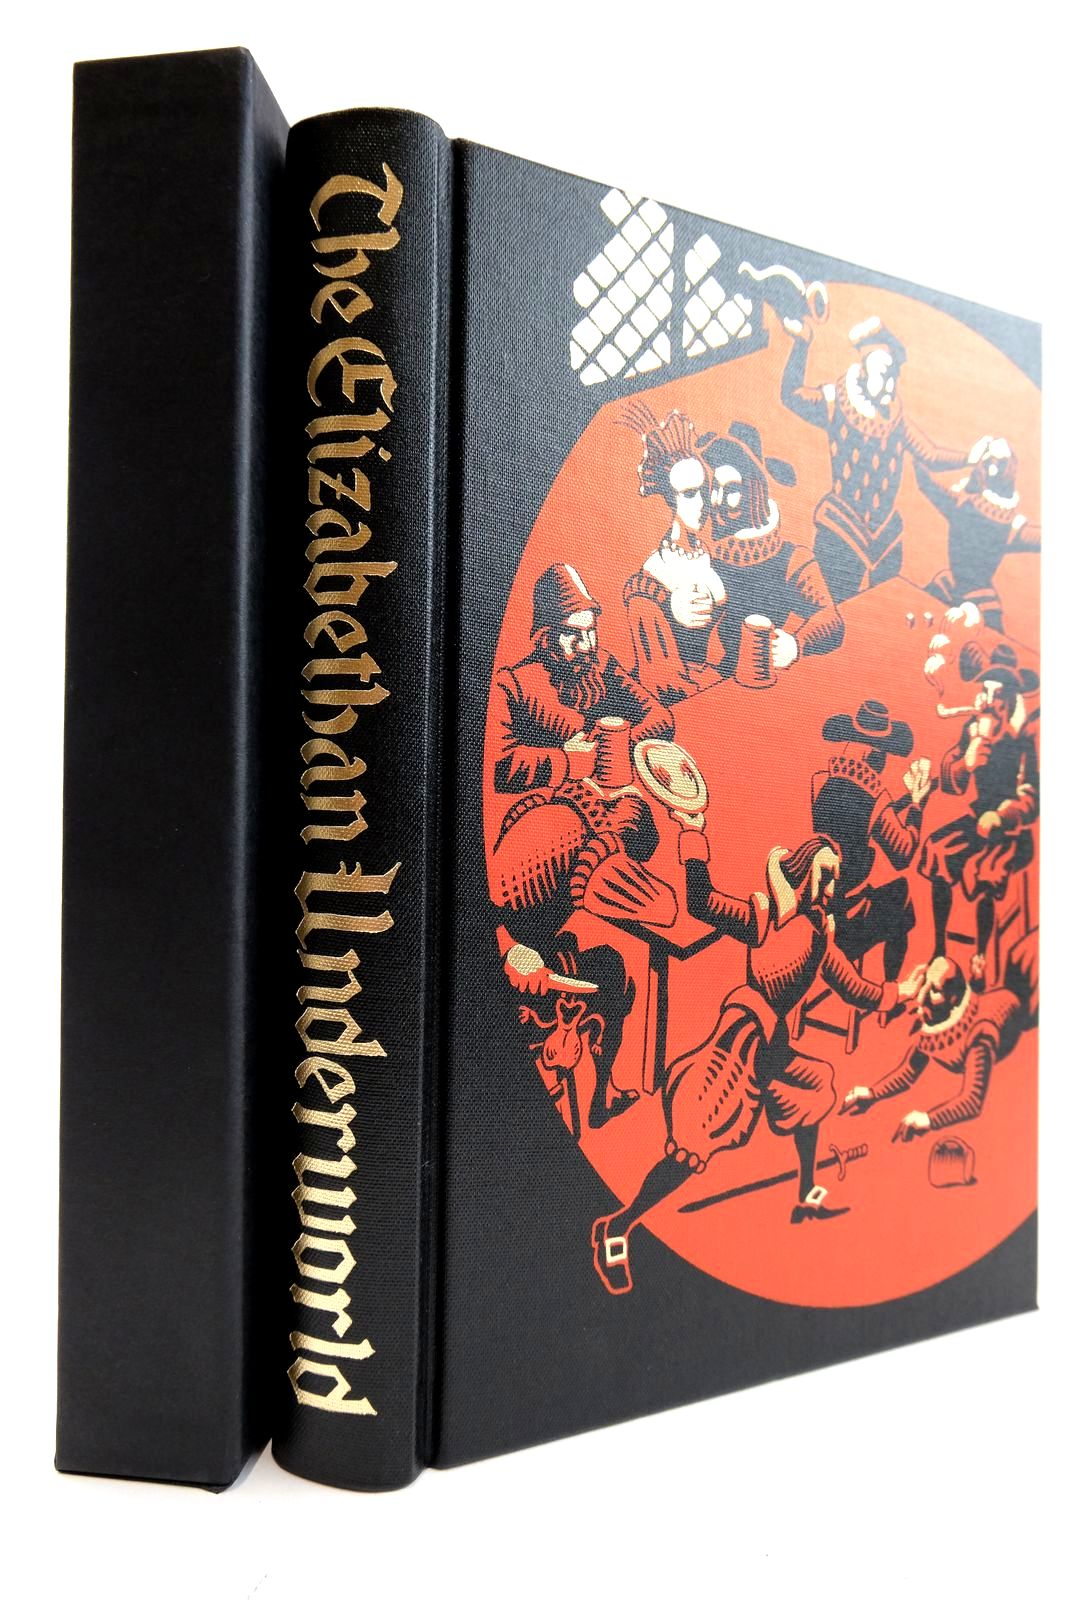 Photo of THE ELIZABETHAN UNDERWORLD written by Salgado, Gamini Wood, Michael published by Folio Society (STOCK CODE: 2133229)  for sale by Stella & Rose's Books